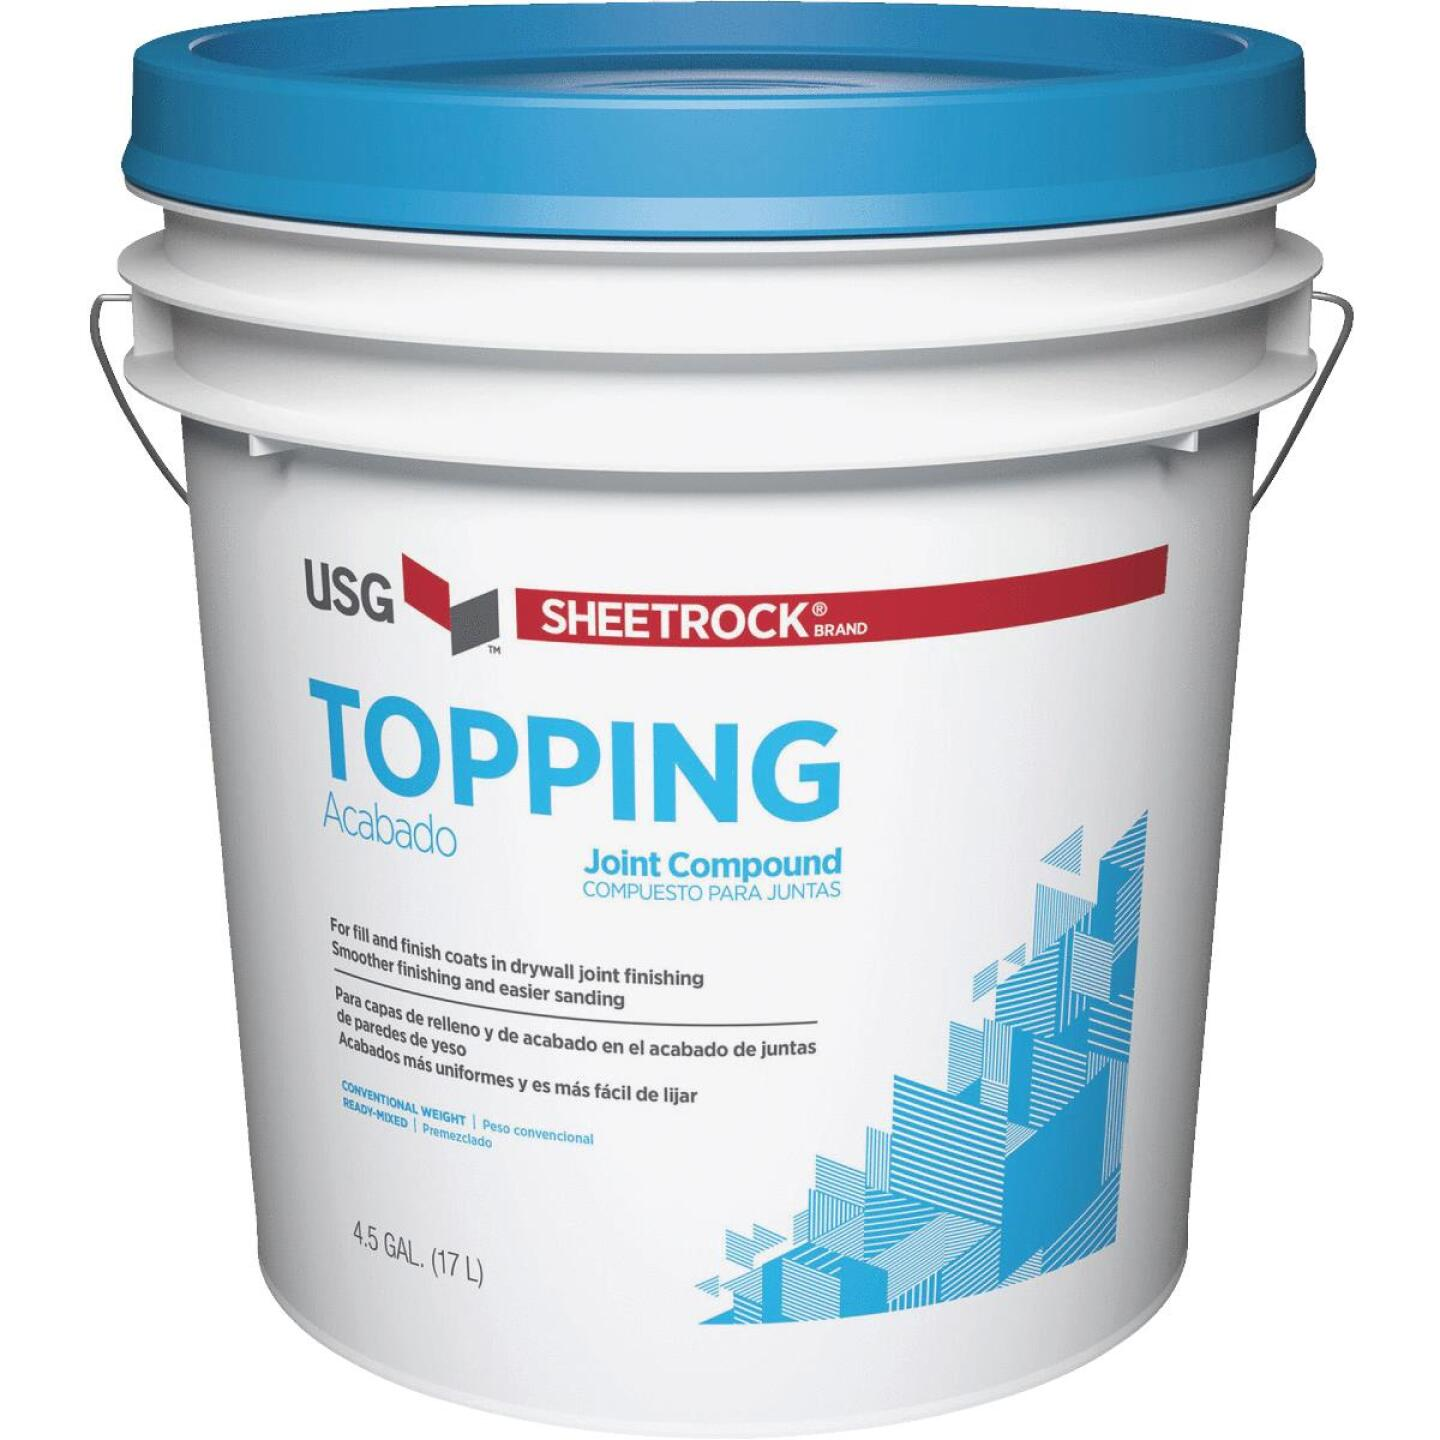 Sheetrock 4.5 Gal. Pre-Mixed Topping Drywall Joint Compound Image 1